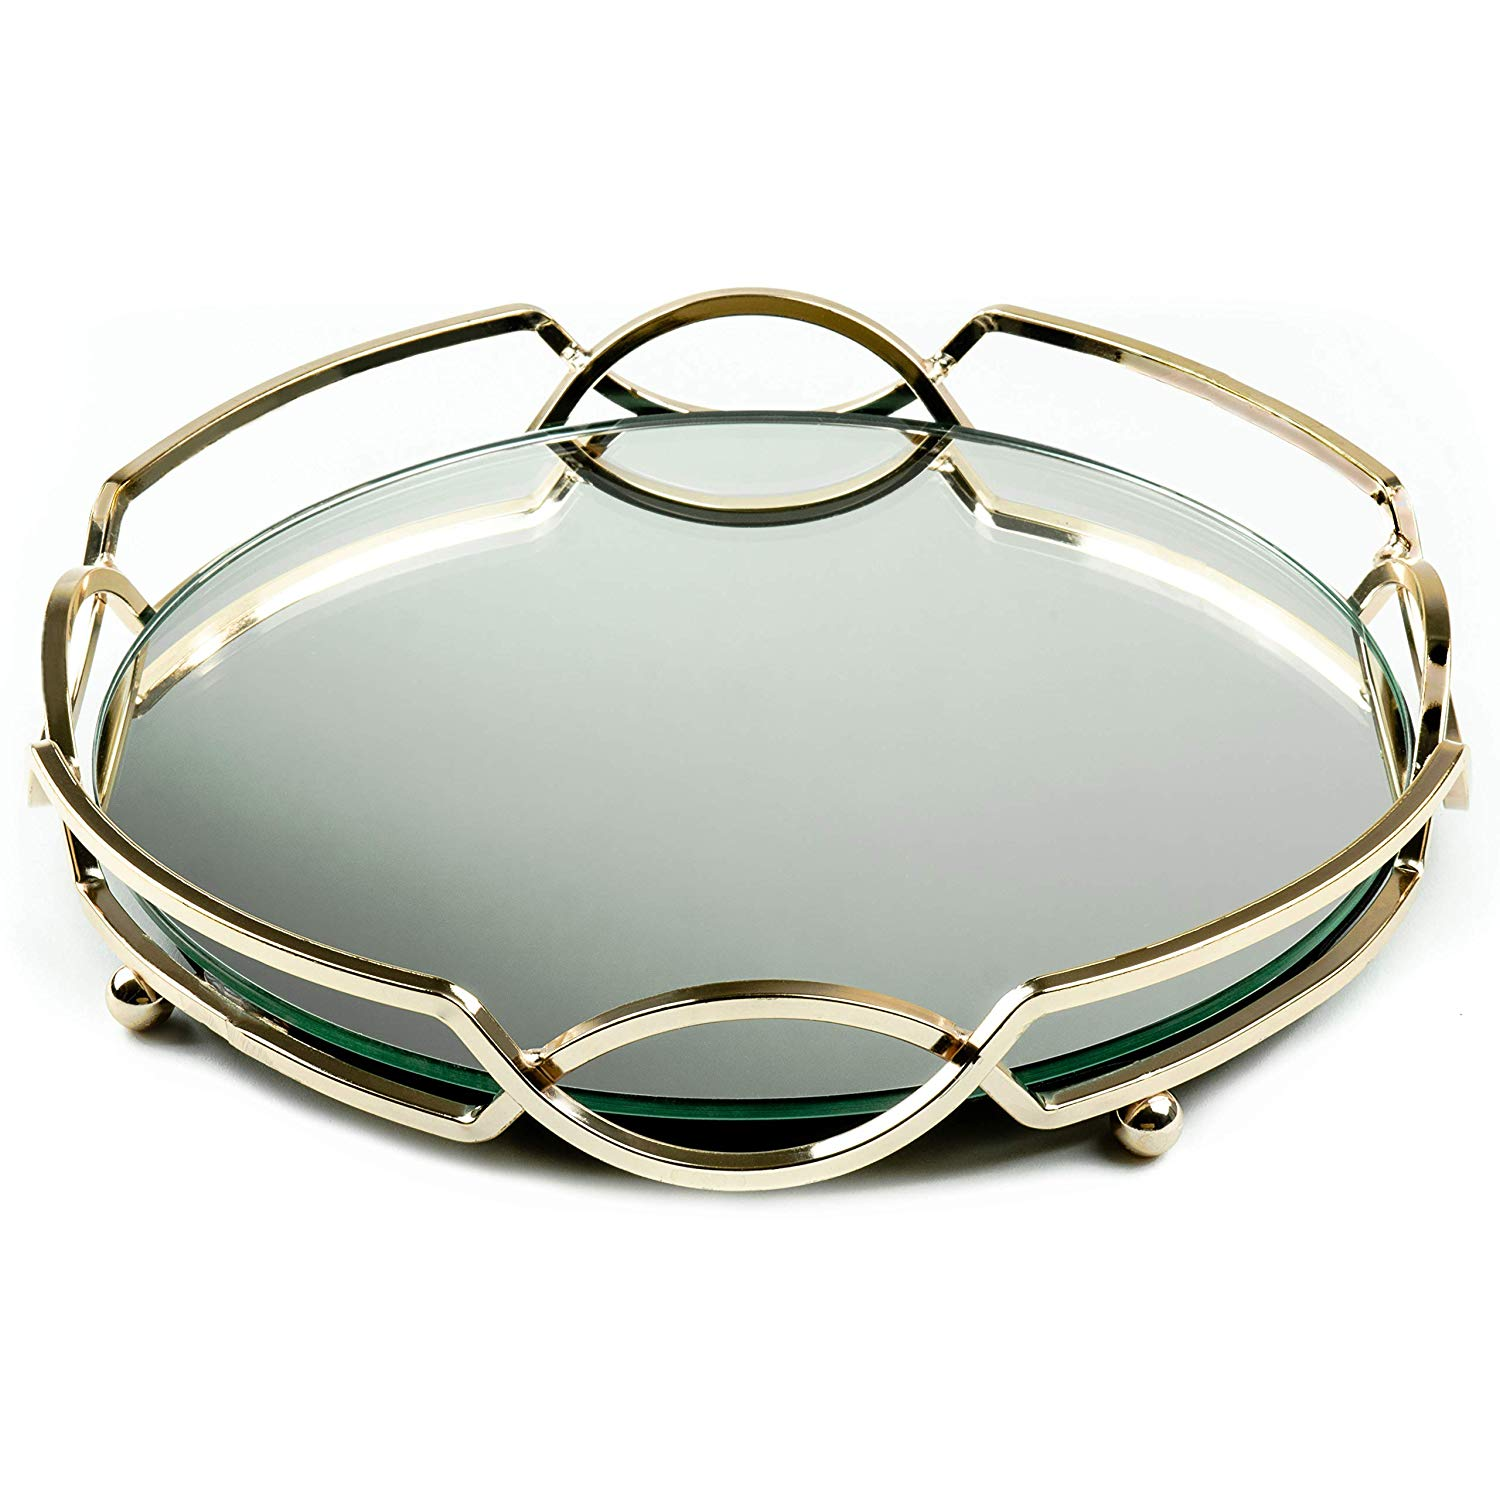 Uxury Round Gold Mirrored Metal Serving Tray